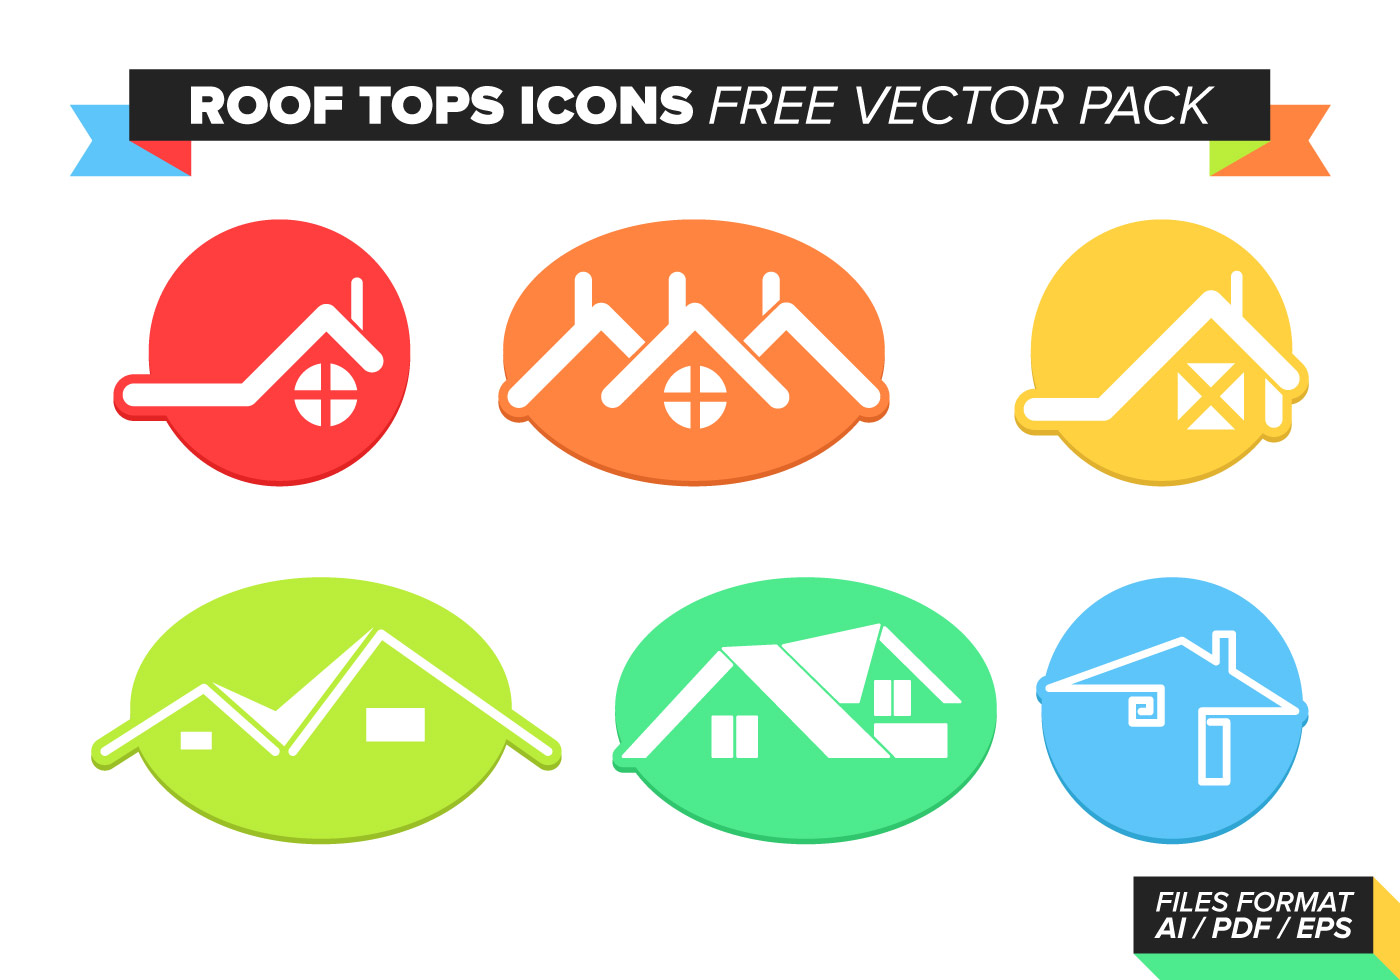 Roof Tops Free Vector Pack Download Free Vector Art